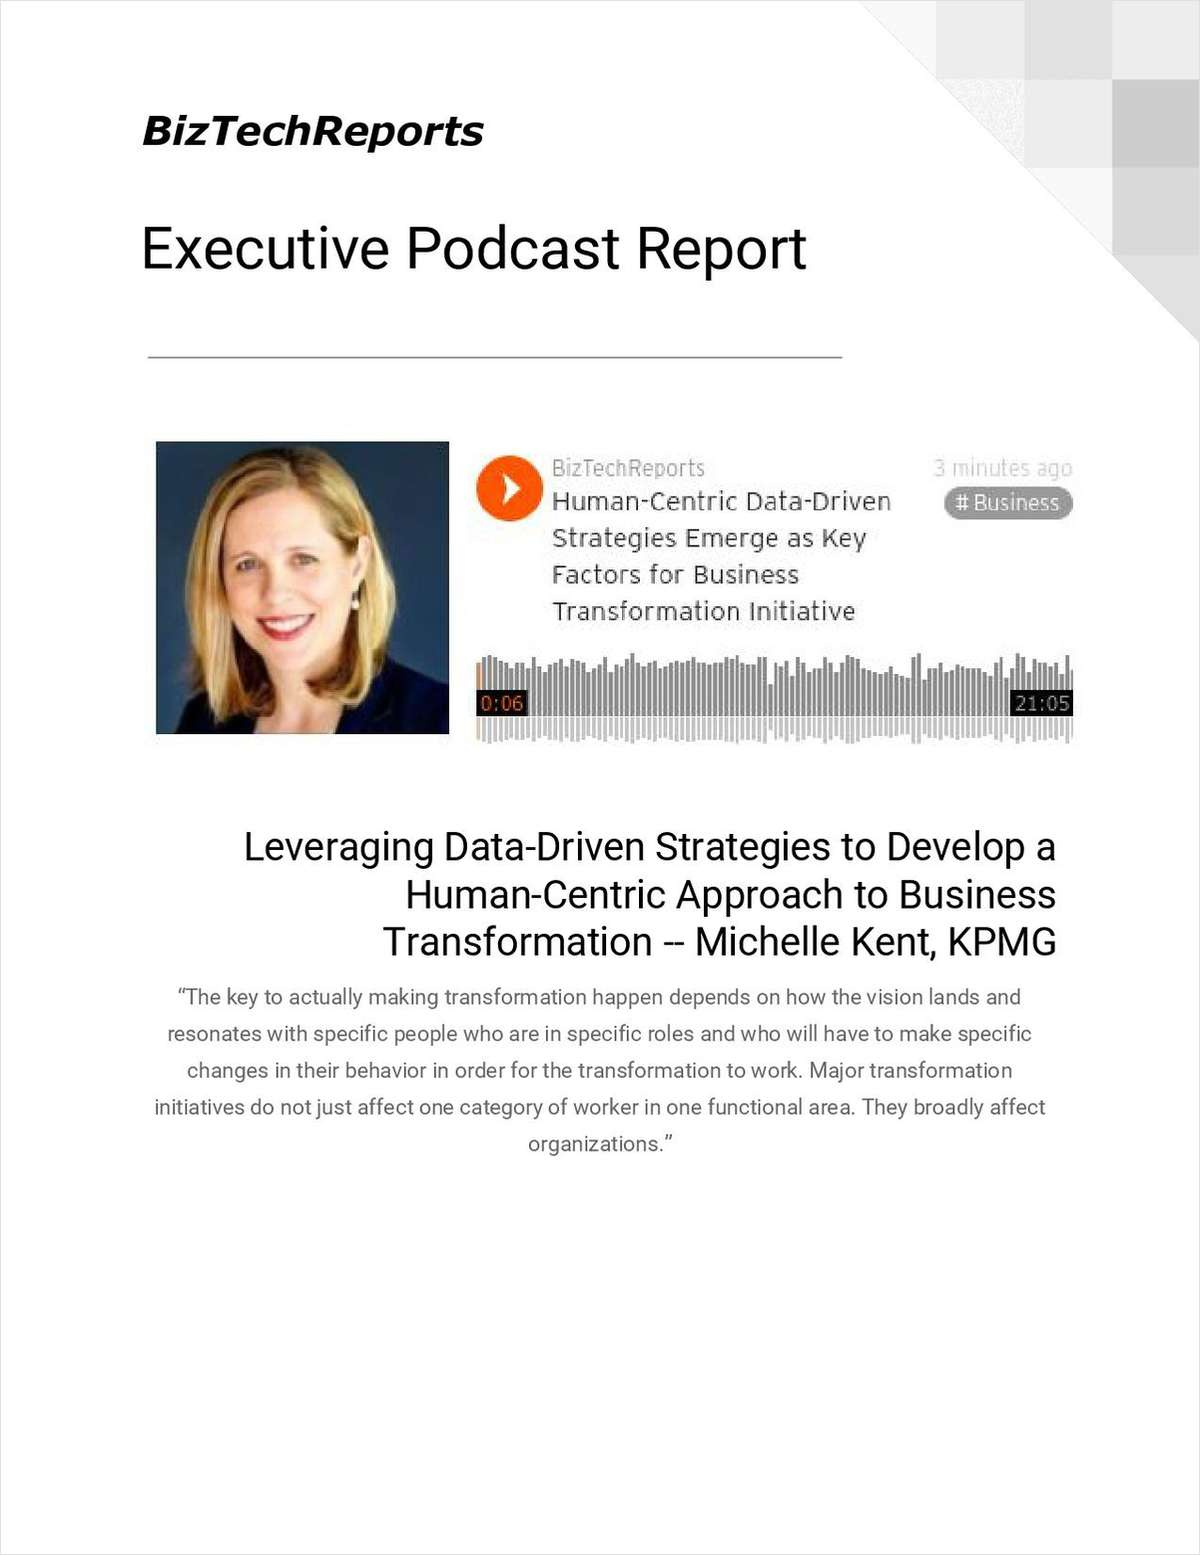 Leveraging Data-Driven Strategies to Develop a Human-Centric Approach to Business Transformation -- Michelle Kent, KPMG